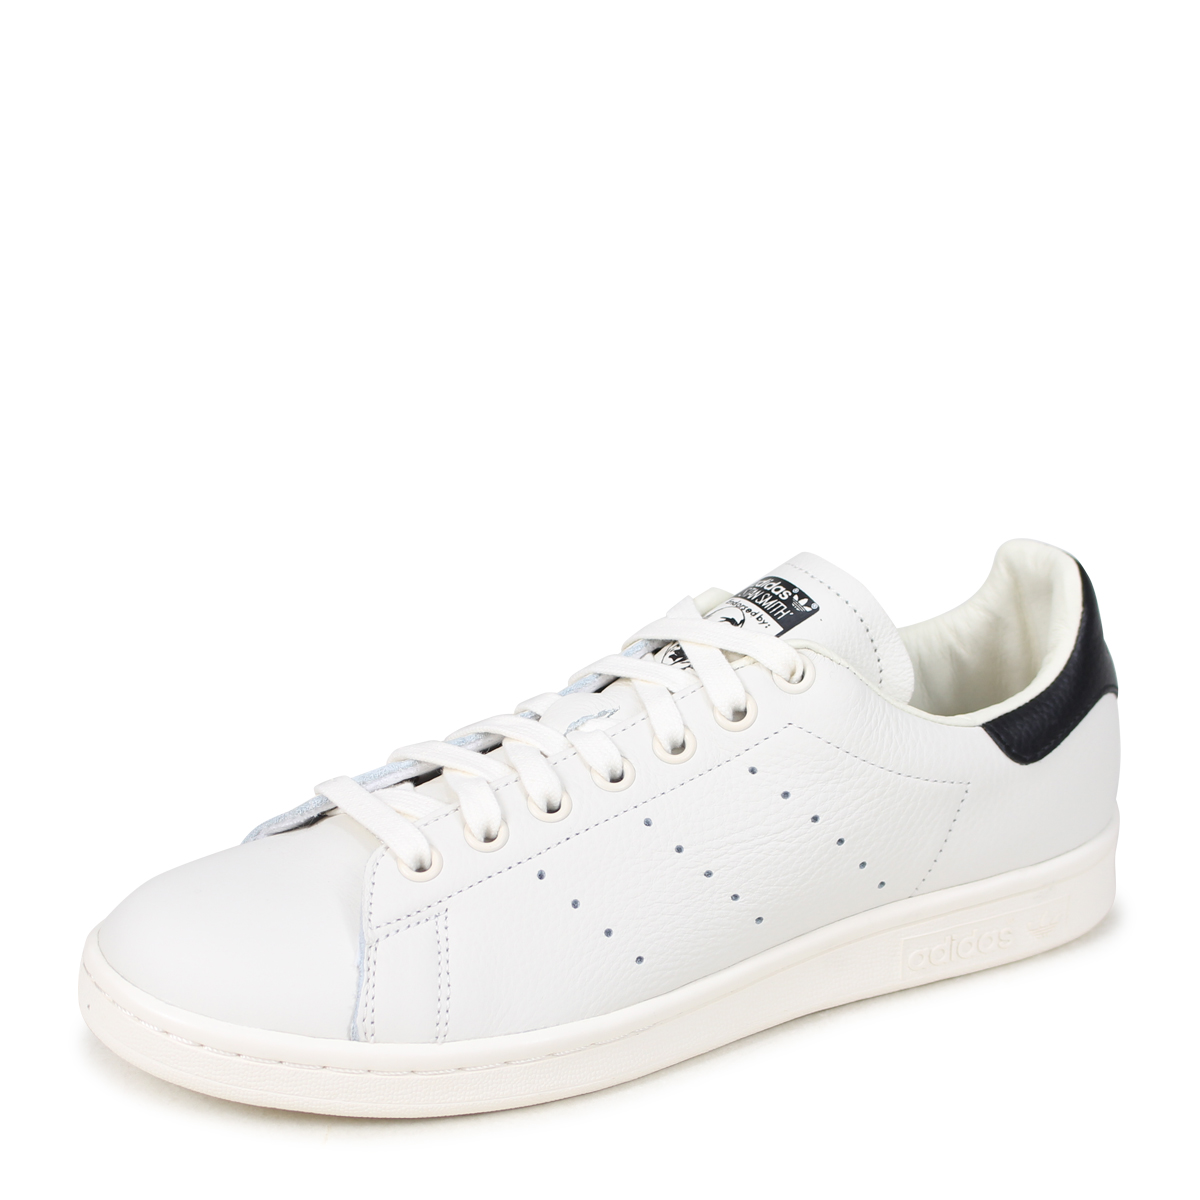 best service 7326d 5472e adidas Originals STAN SMITH Adidas originals Stan Smith sneakers men gap  Dis B37897 white [load planned Shinnyu load in reservation product 6/20 ...